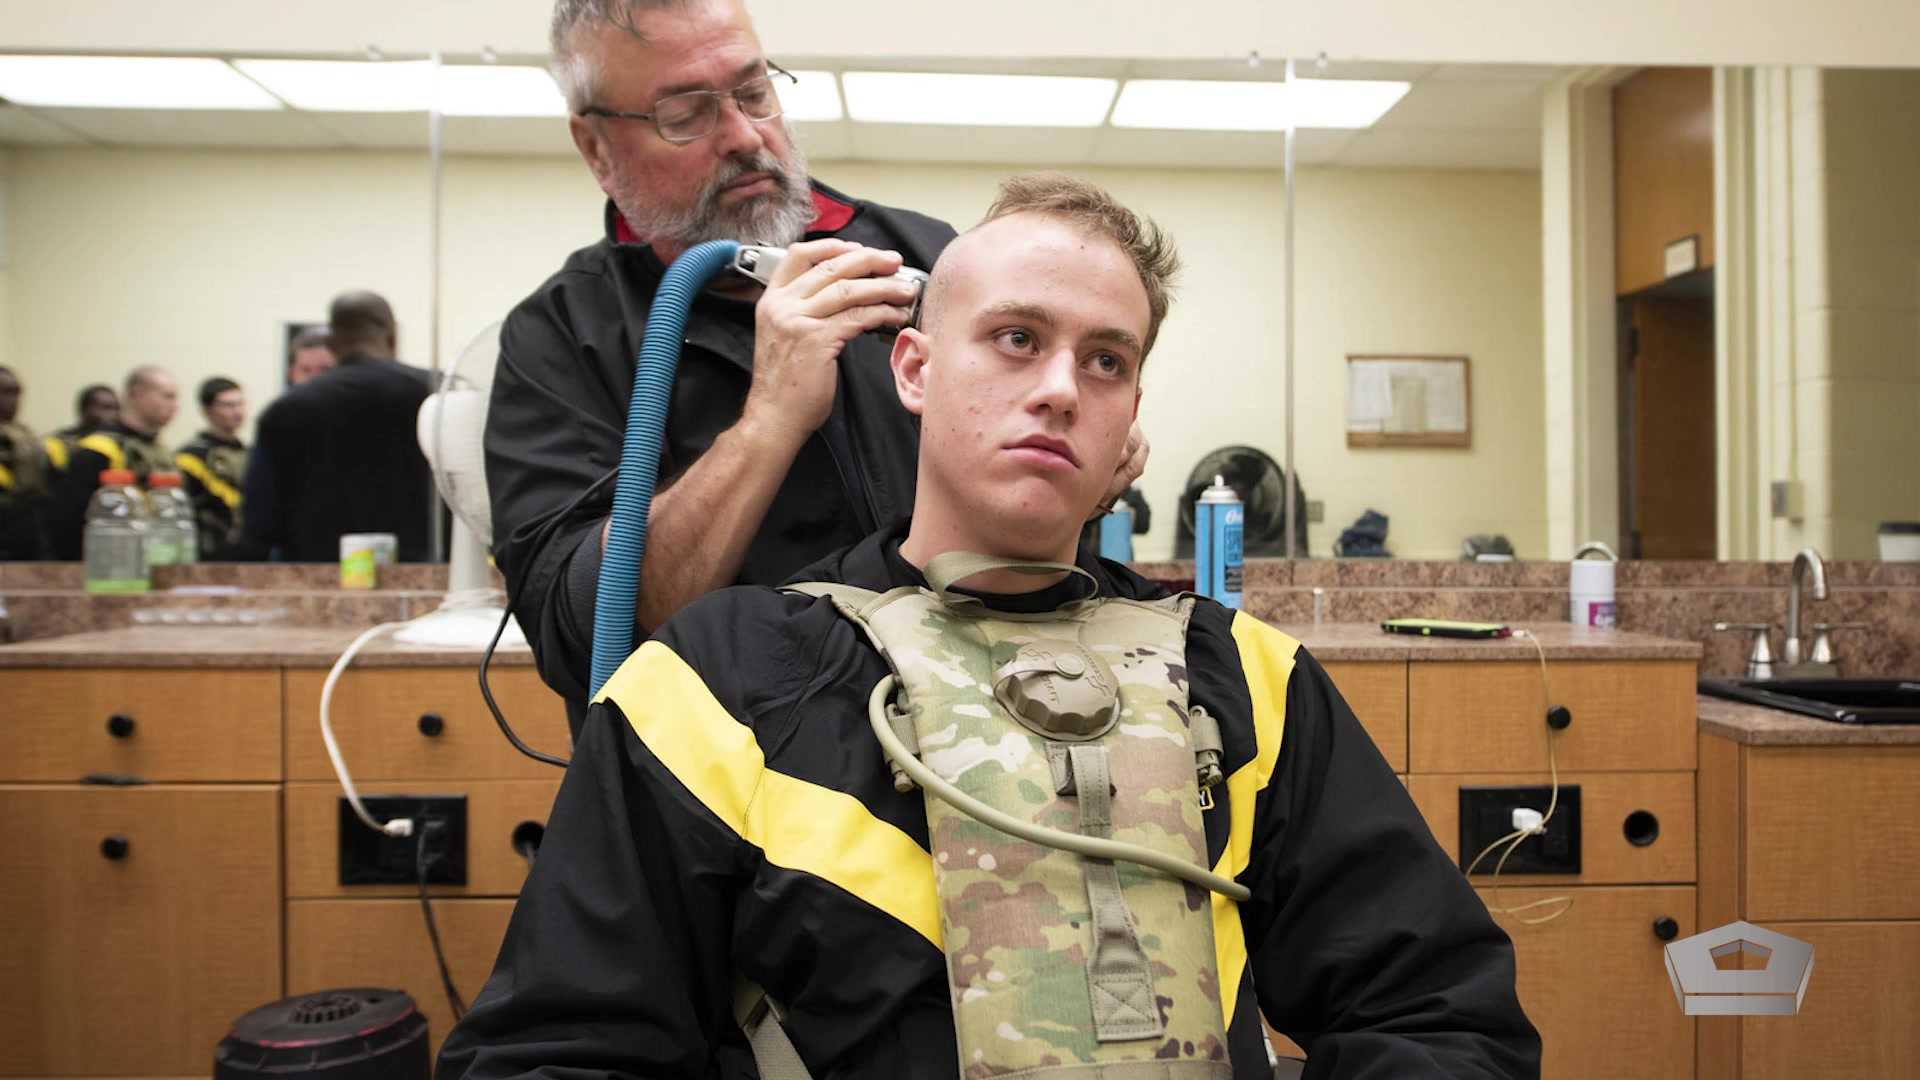 A barber shaves a new recruit's head with an electric razor as other recruits are seen in a mirror.